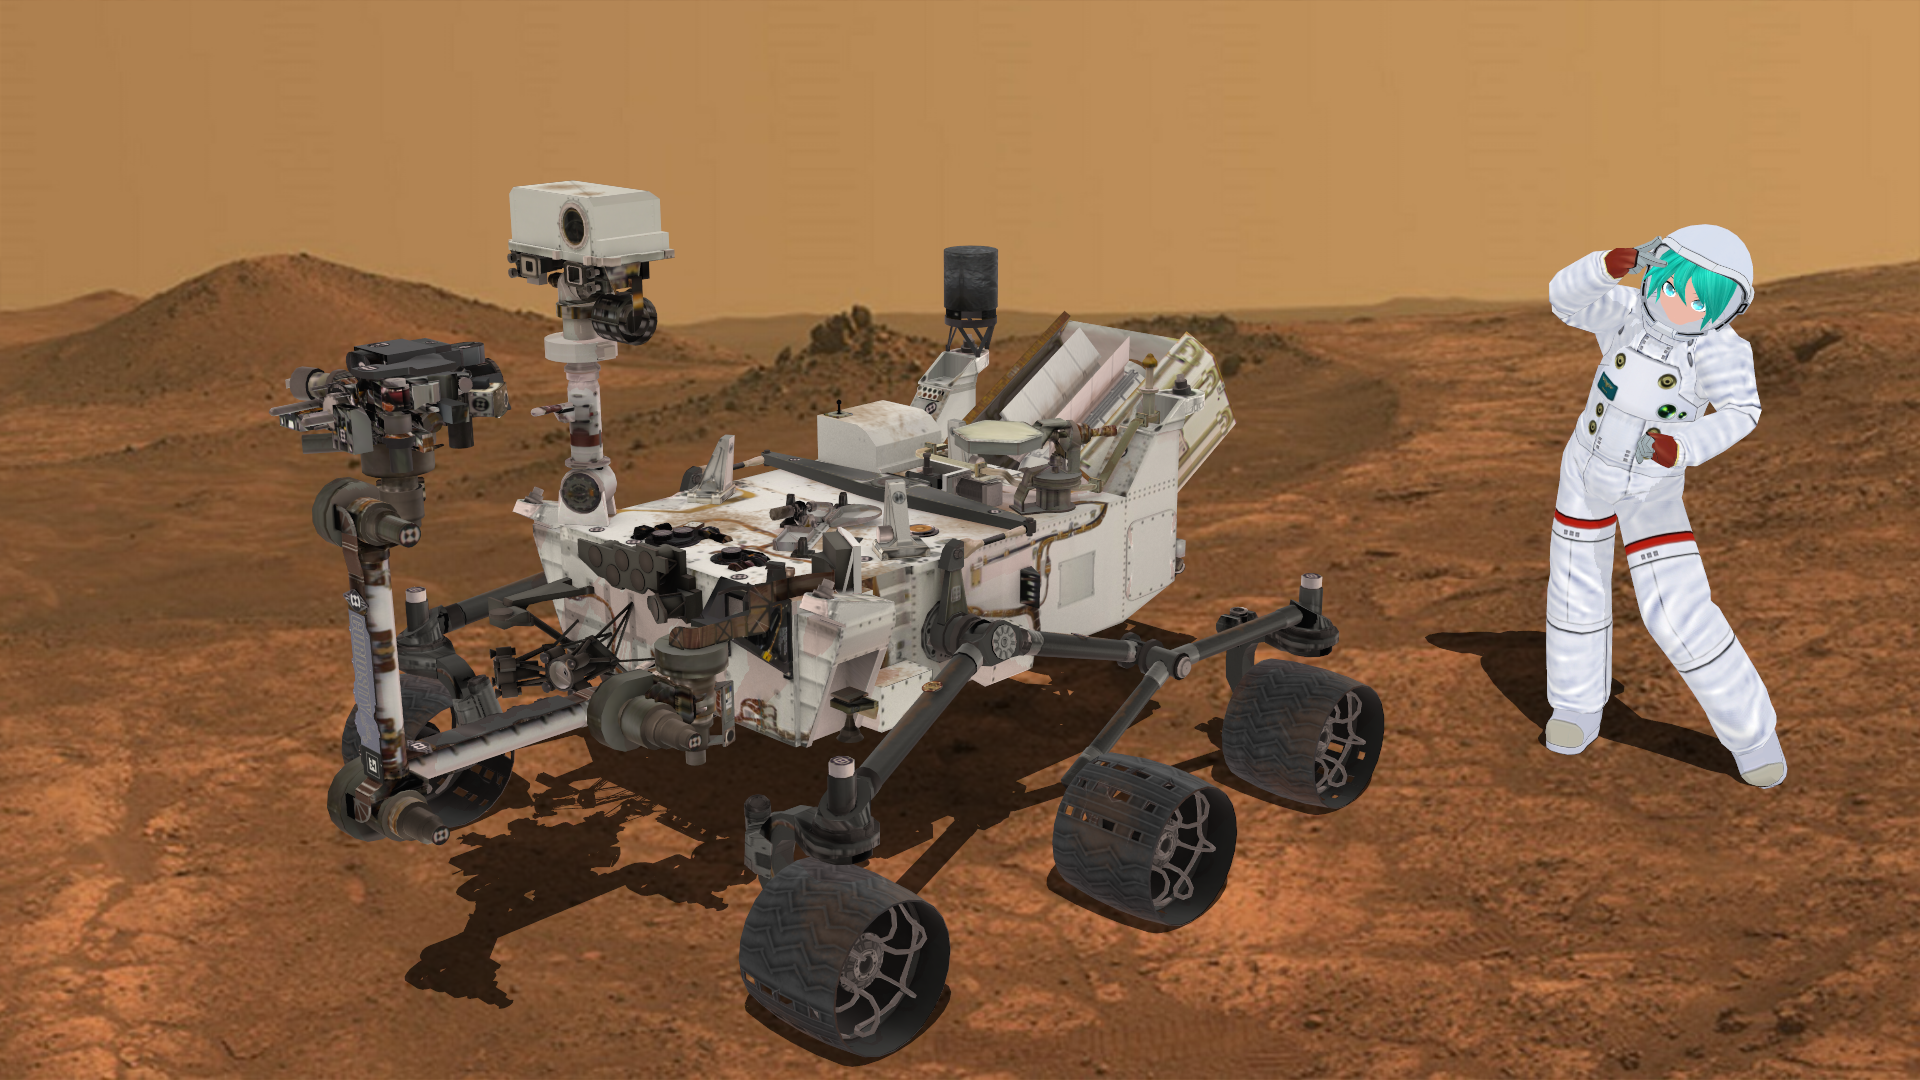 curiosity rover on mars background - photo #44